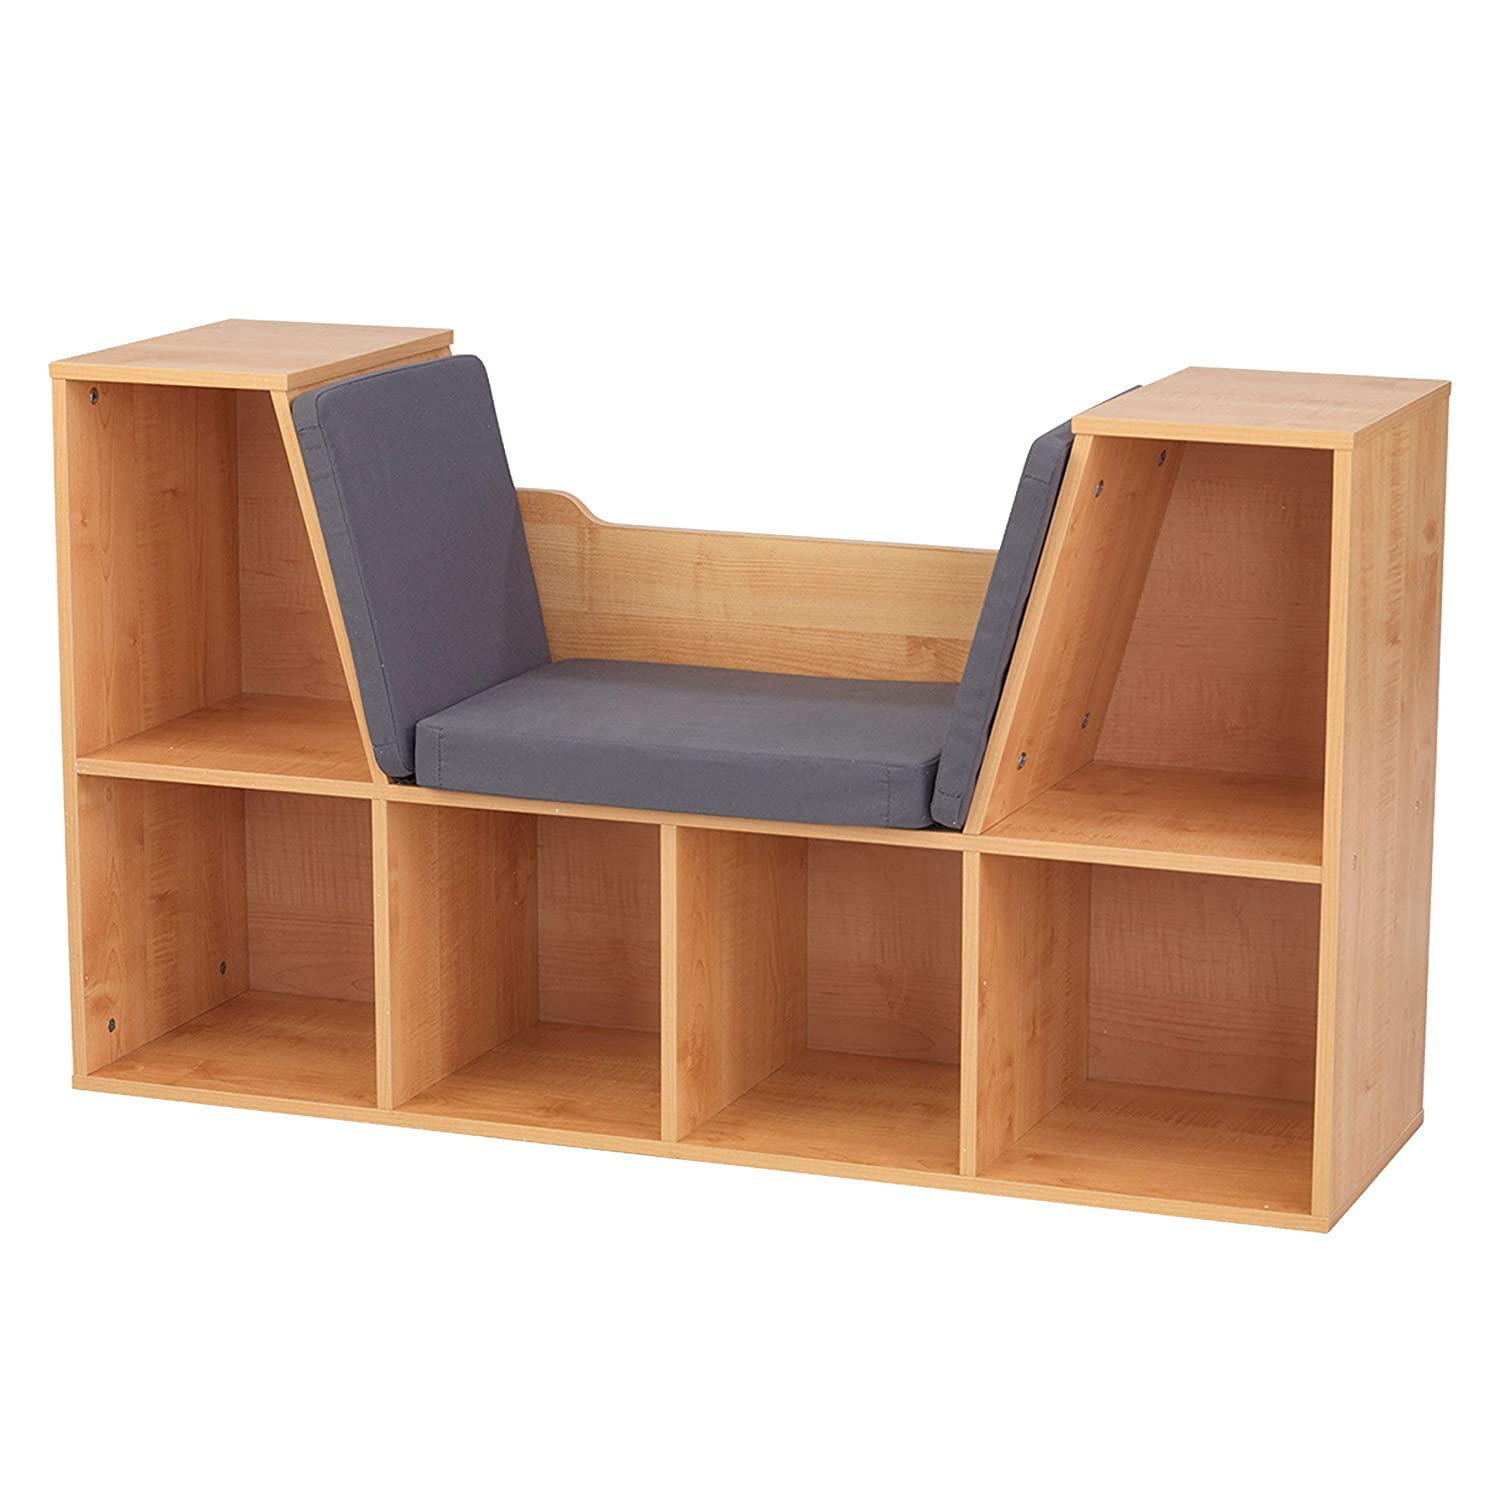 KidKraft Bookcase with Reading Nook Toy, Natural (Renewed)